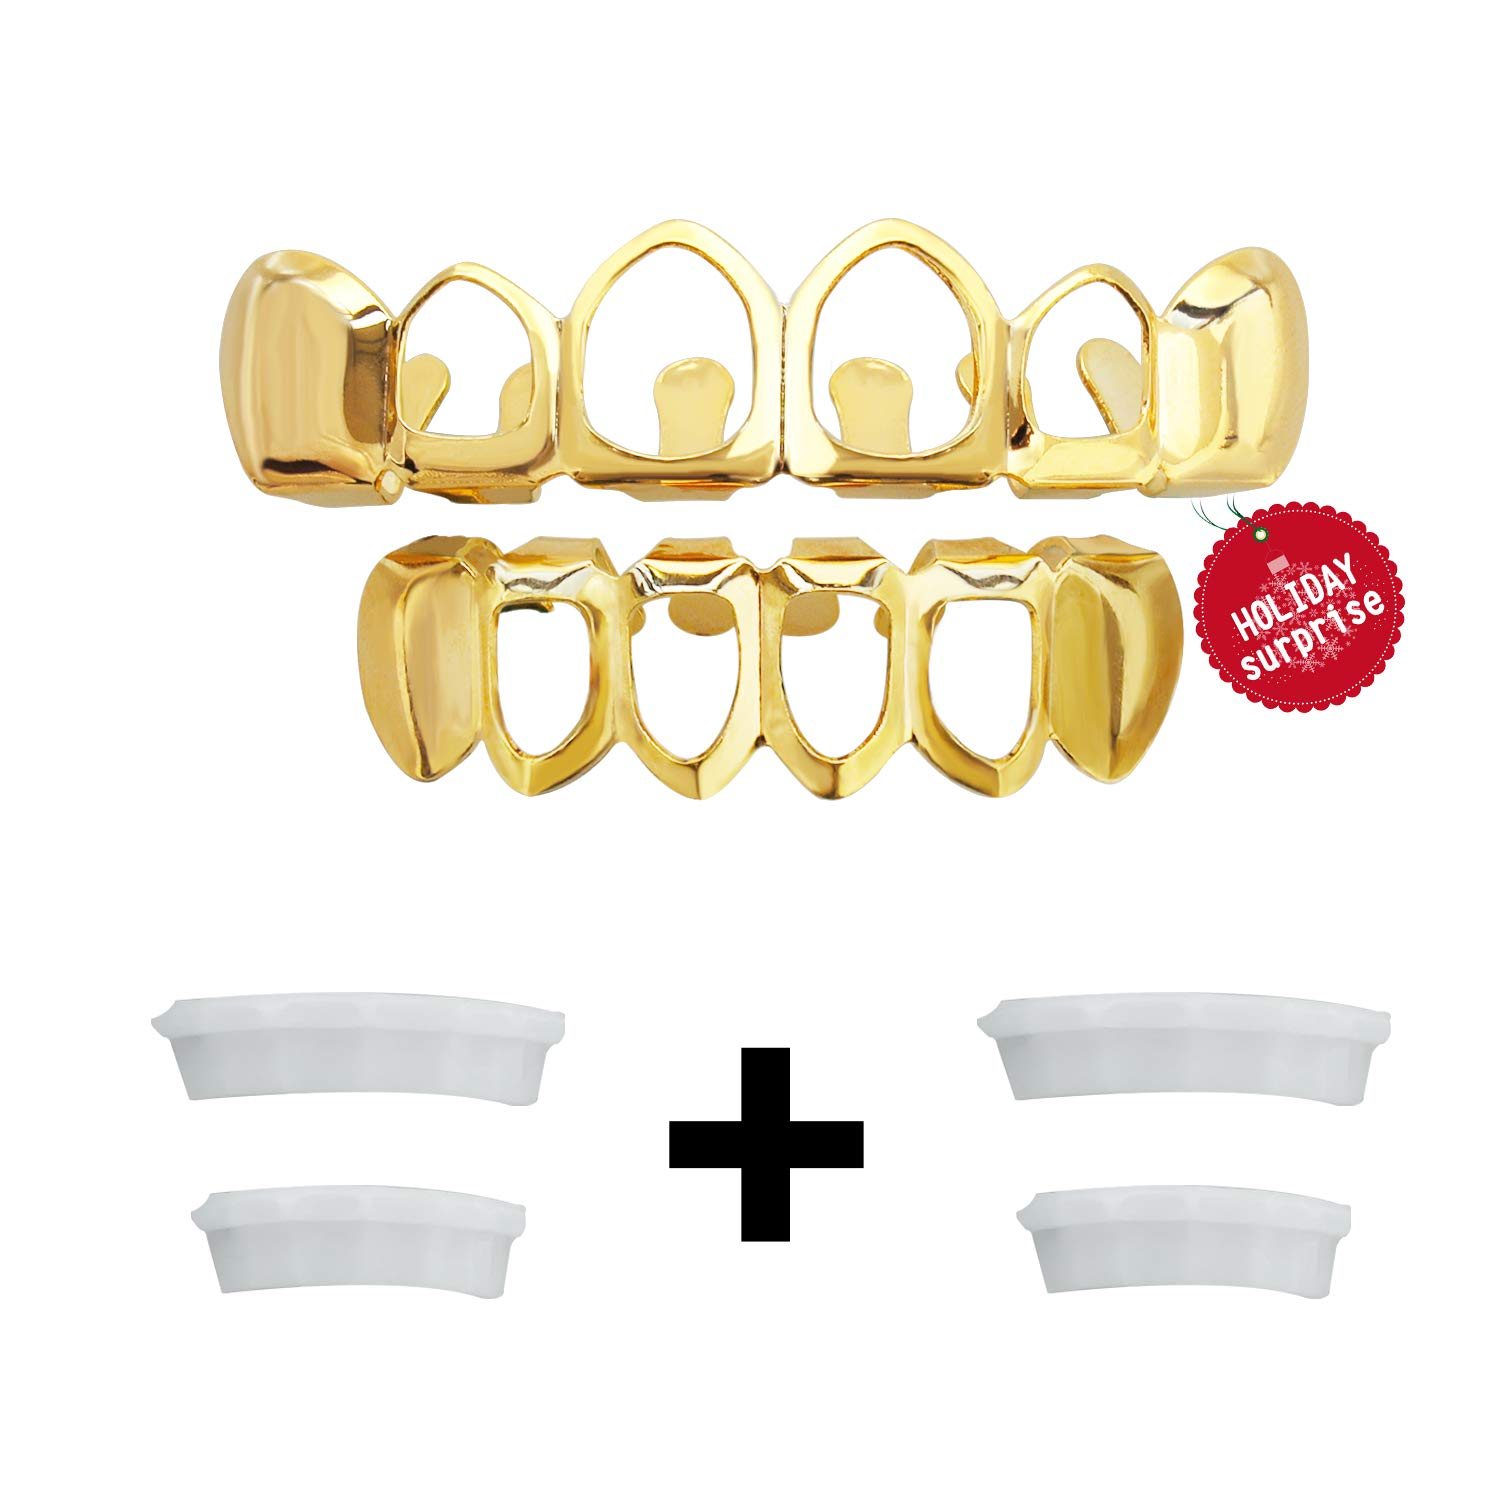 TSANLY Gold Grillz Teeth New Custom Fit Gift Teeth Grills Best Gift for Son 14k Gold Grillz Plated Open Face Teeth Grillz Caps Top & Bottom Grill Set for Kids + Microfiber Cloth